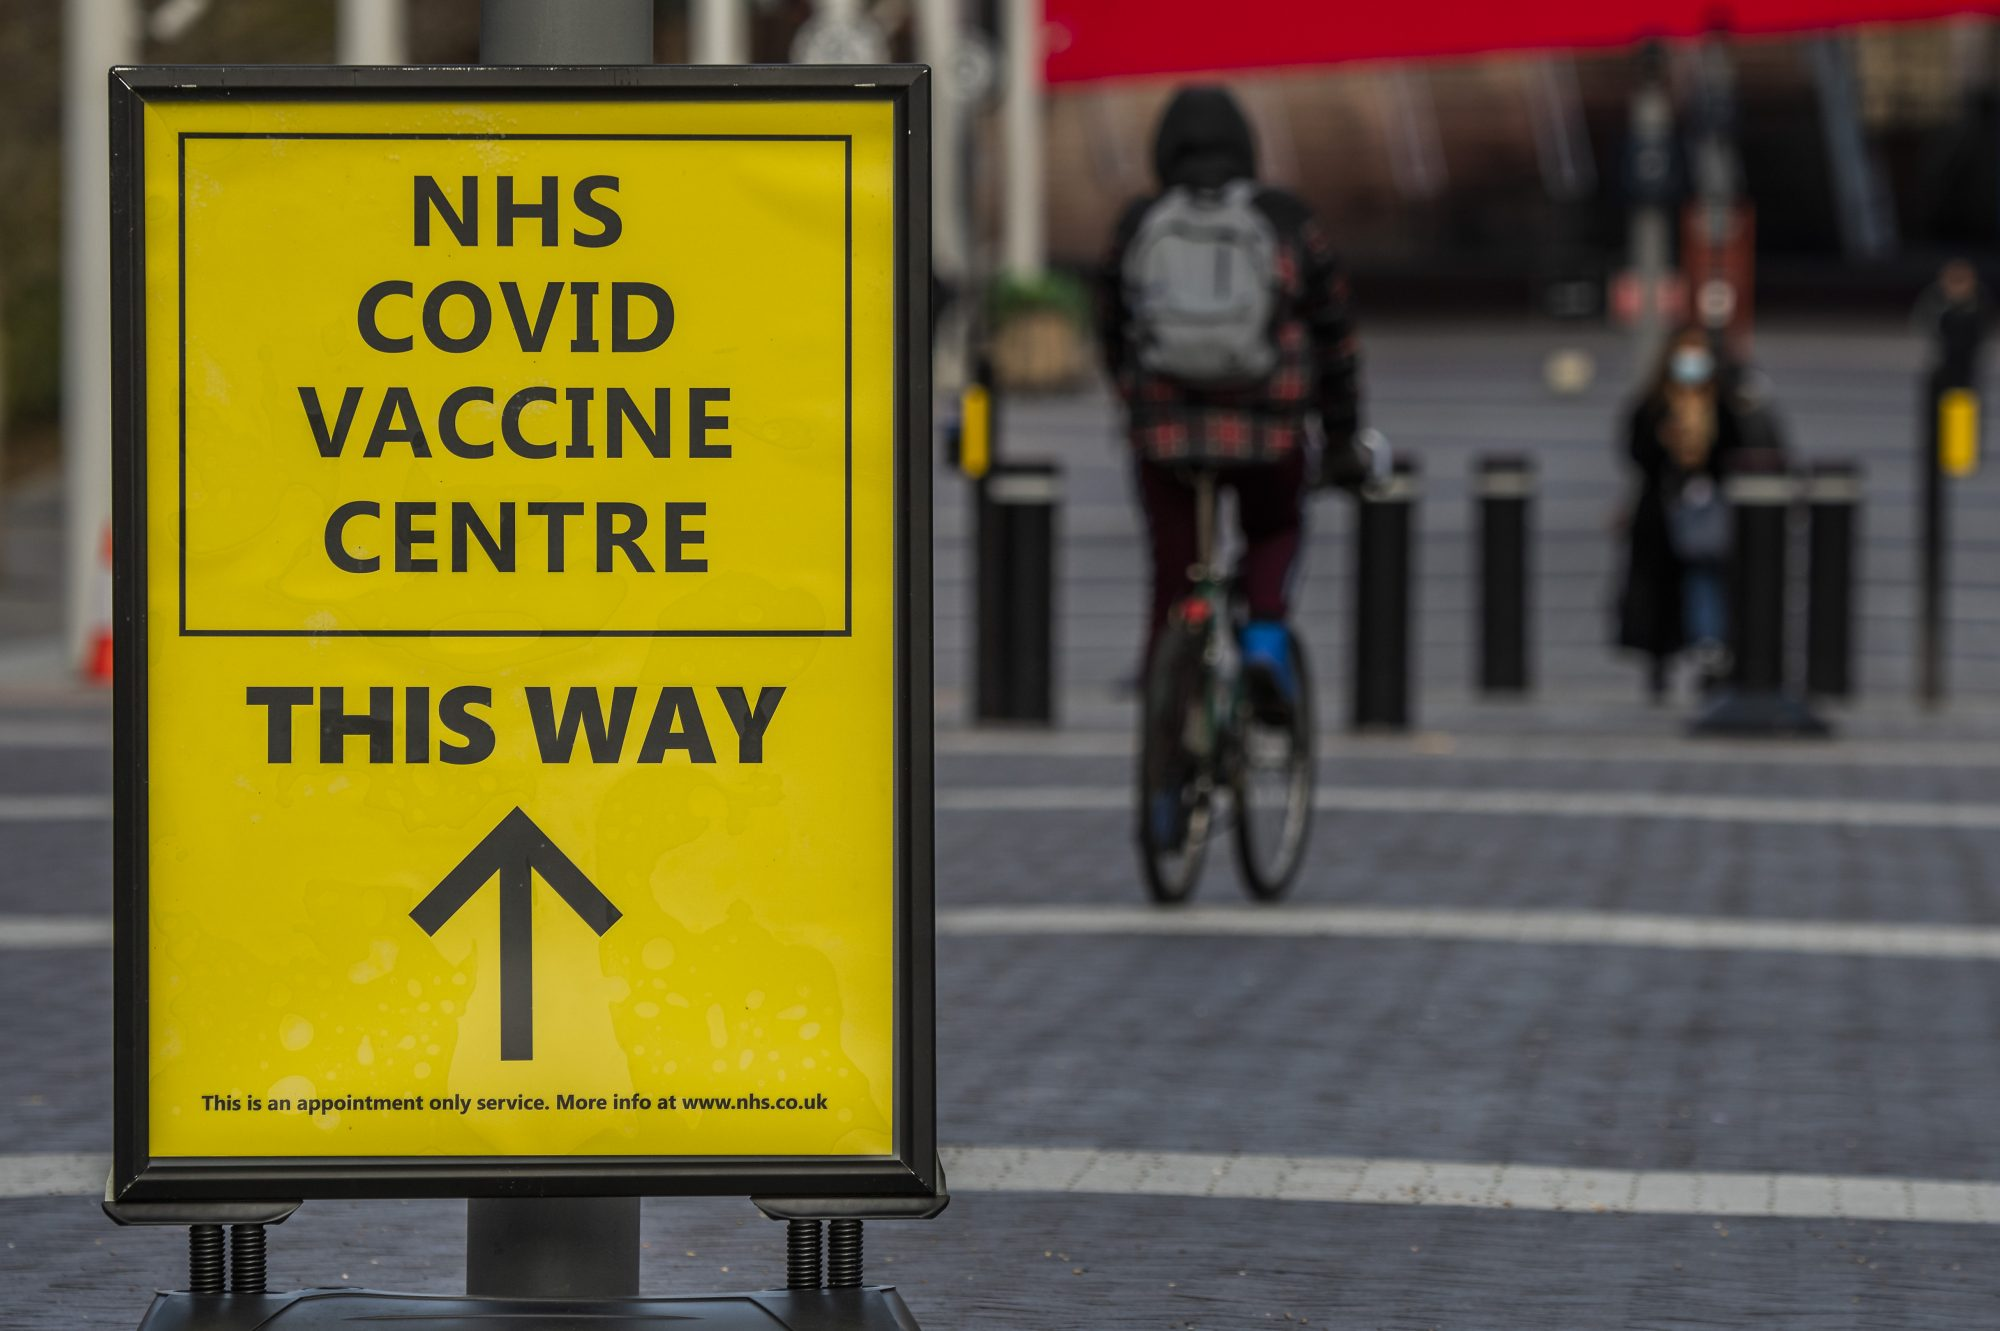 Government under pressure to cut vaccine gap amid concern over new variants - channel 4